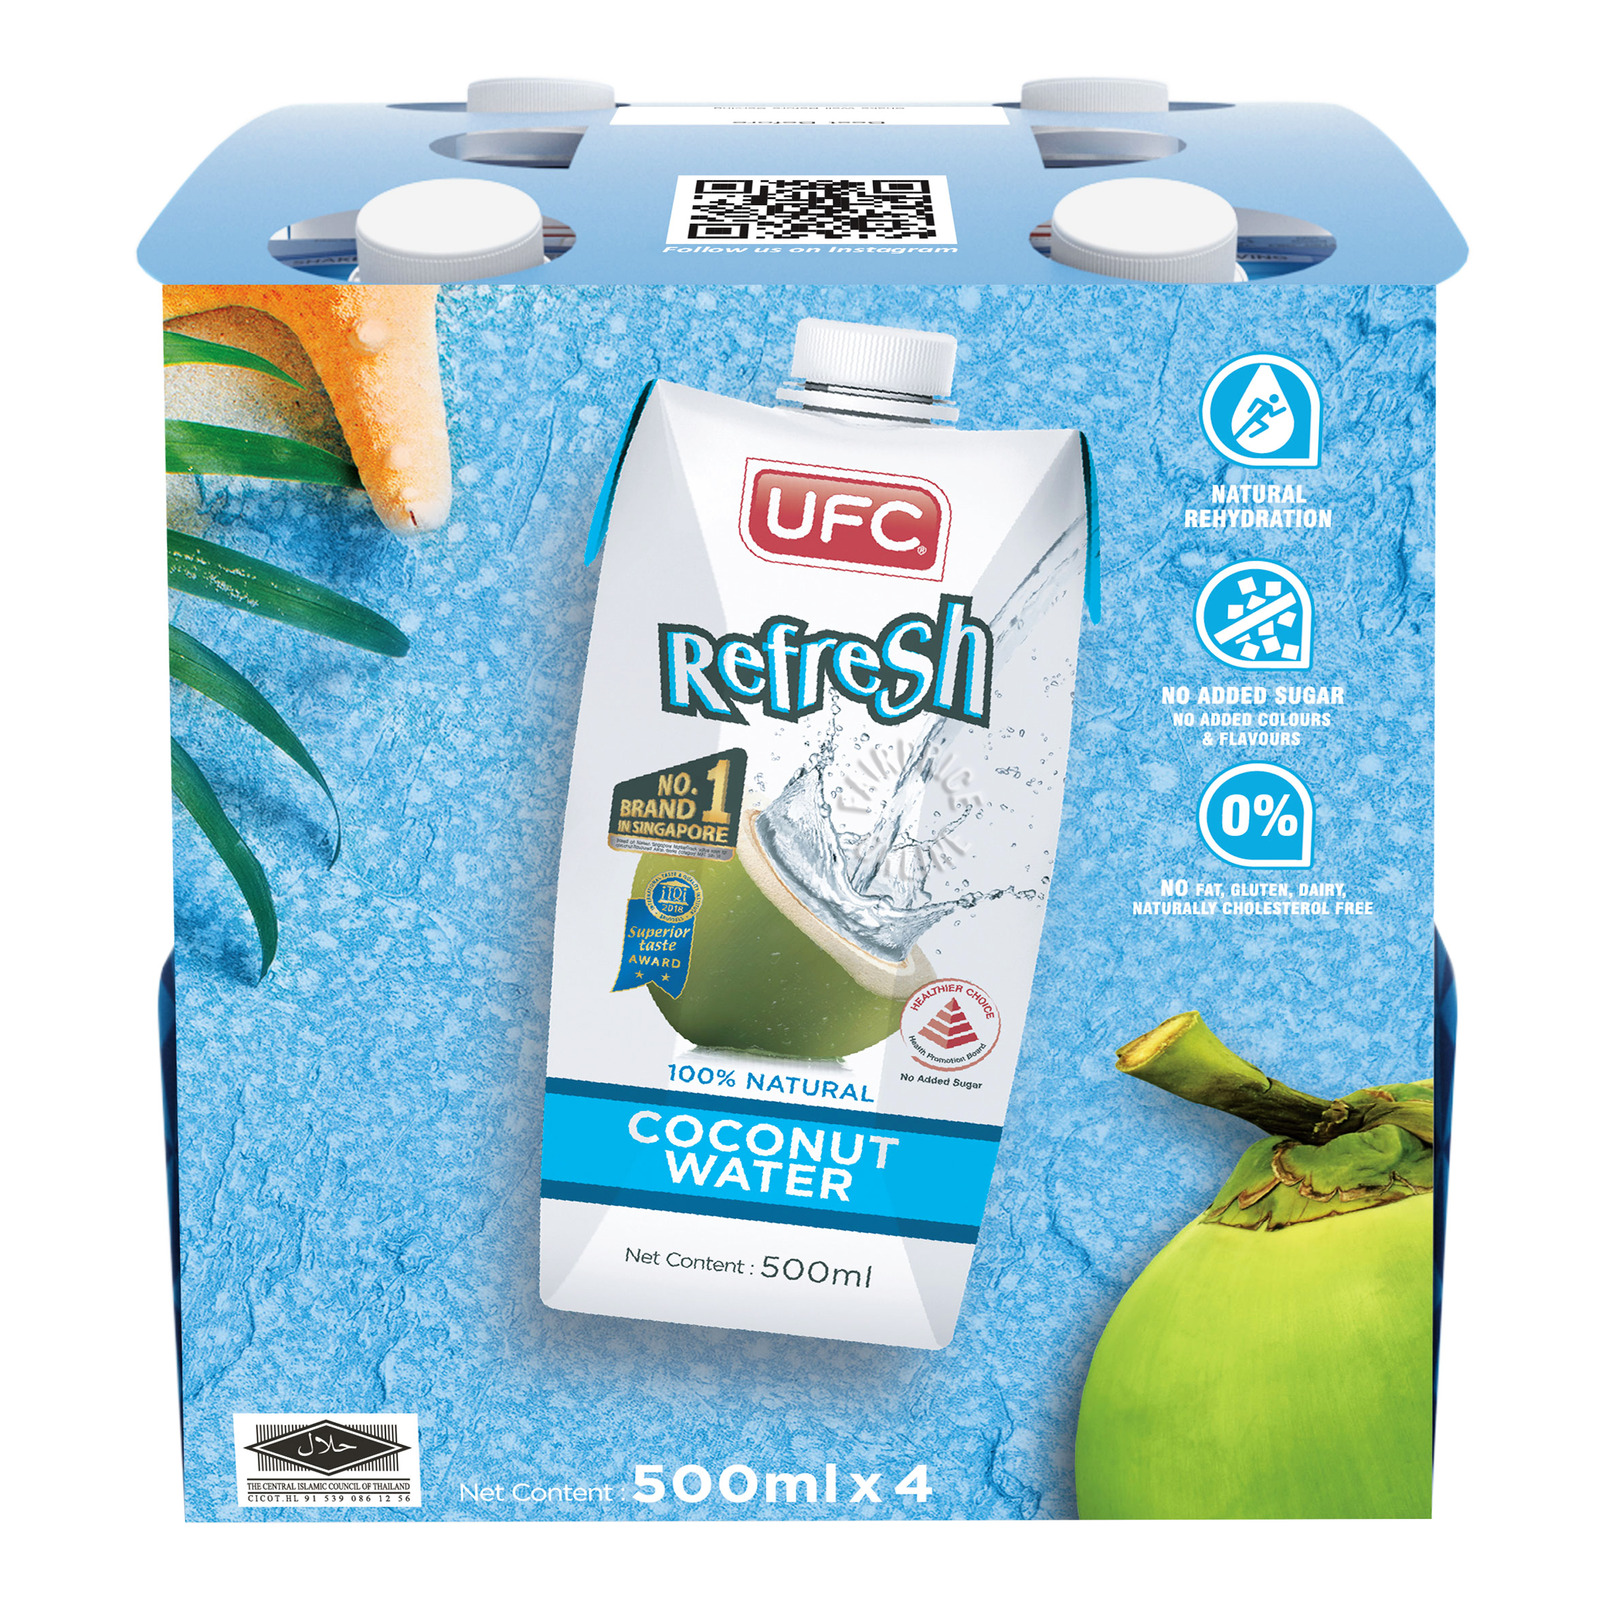 UFC Refresh 100% Natural Coconut Water